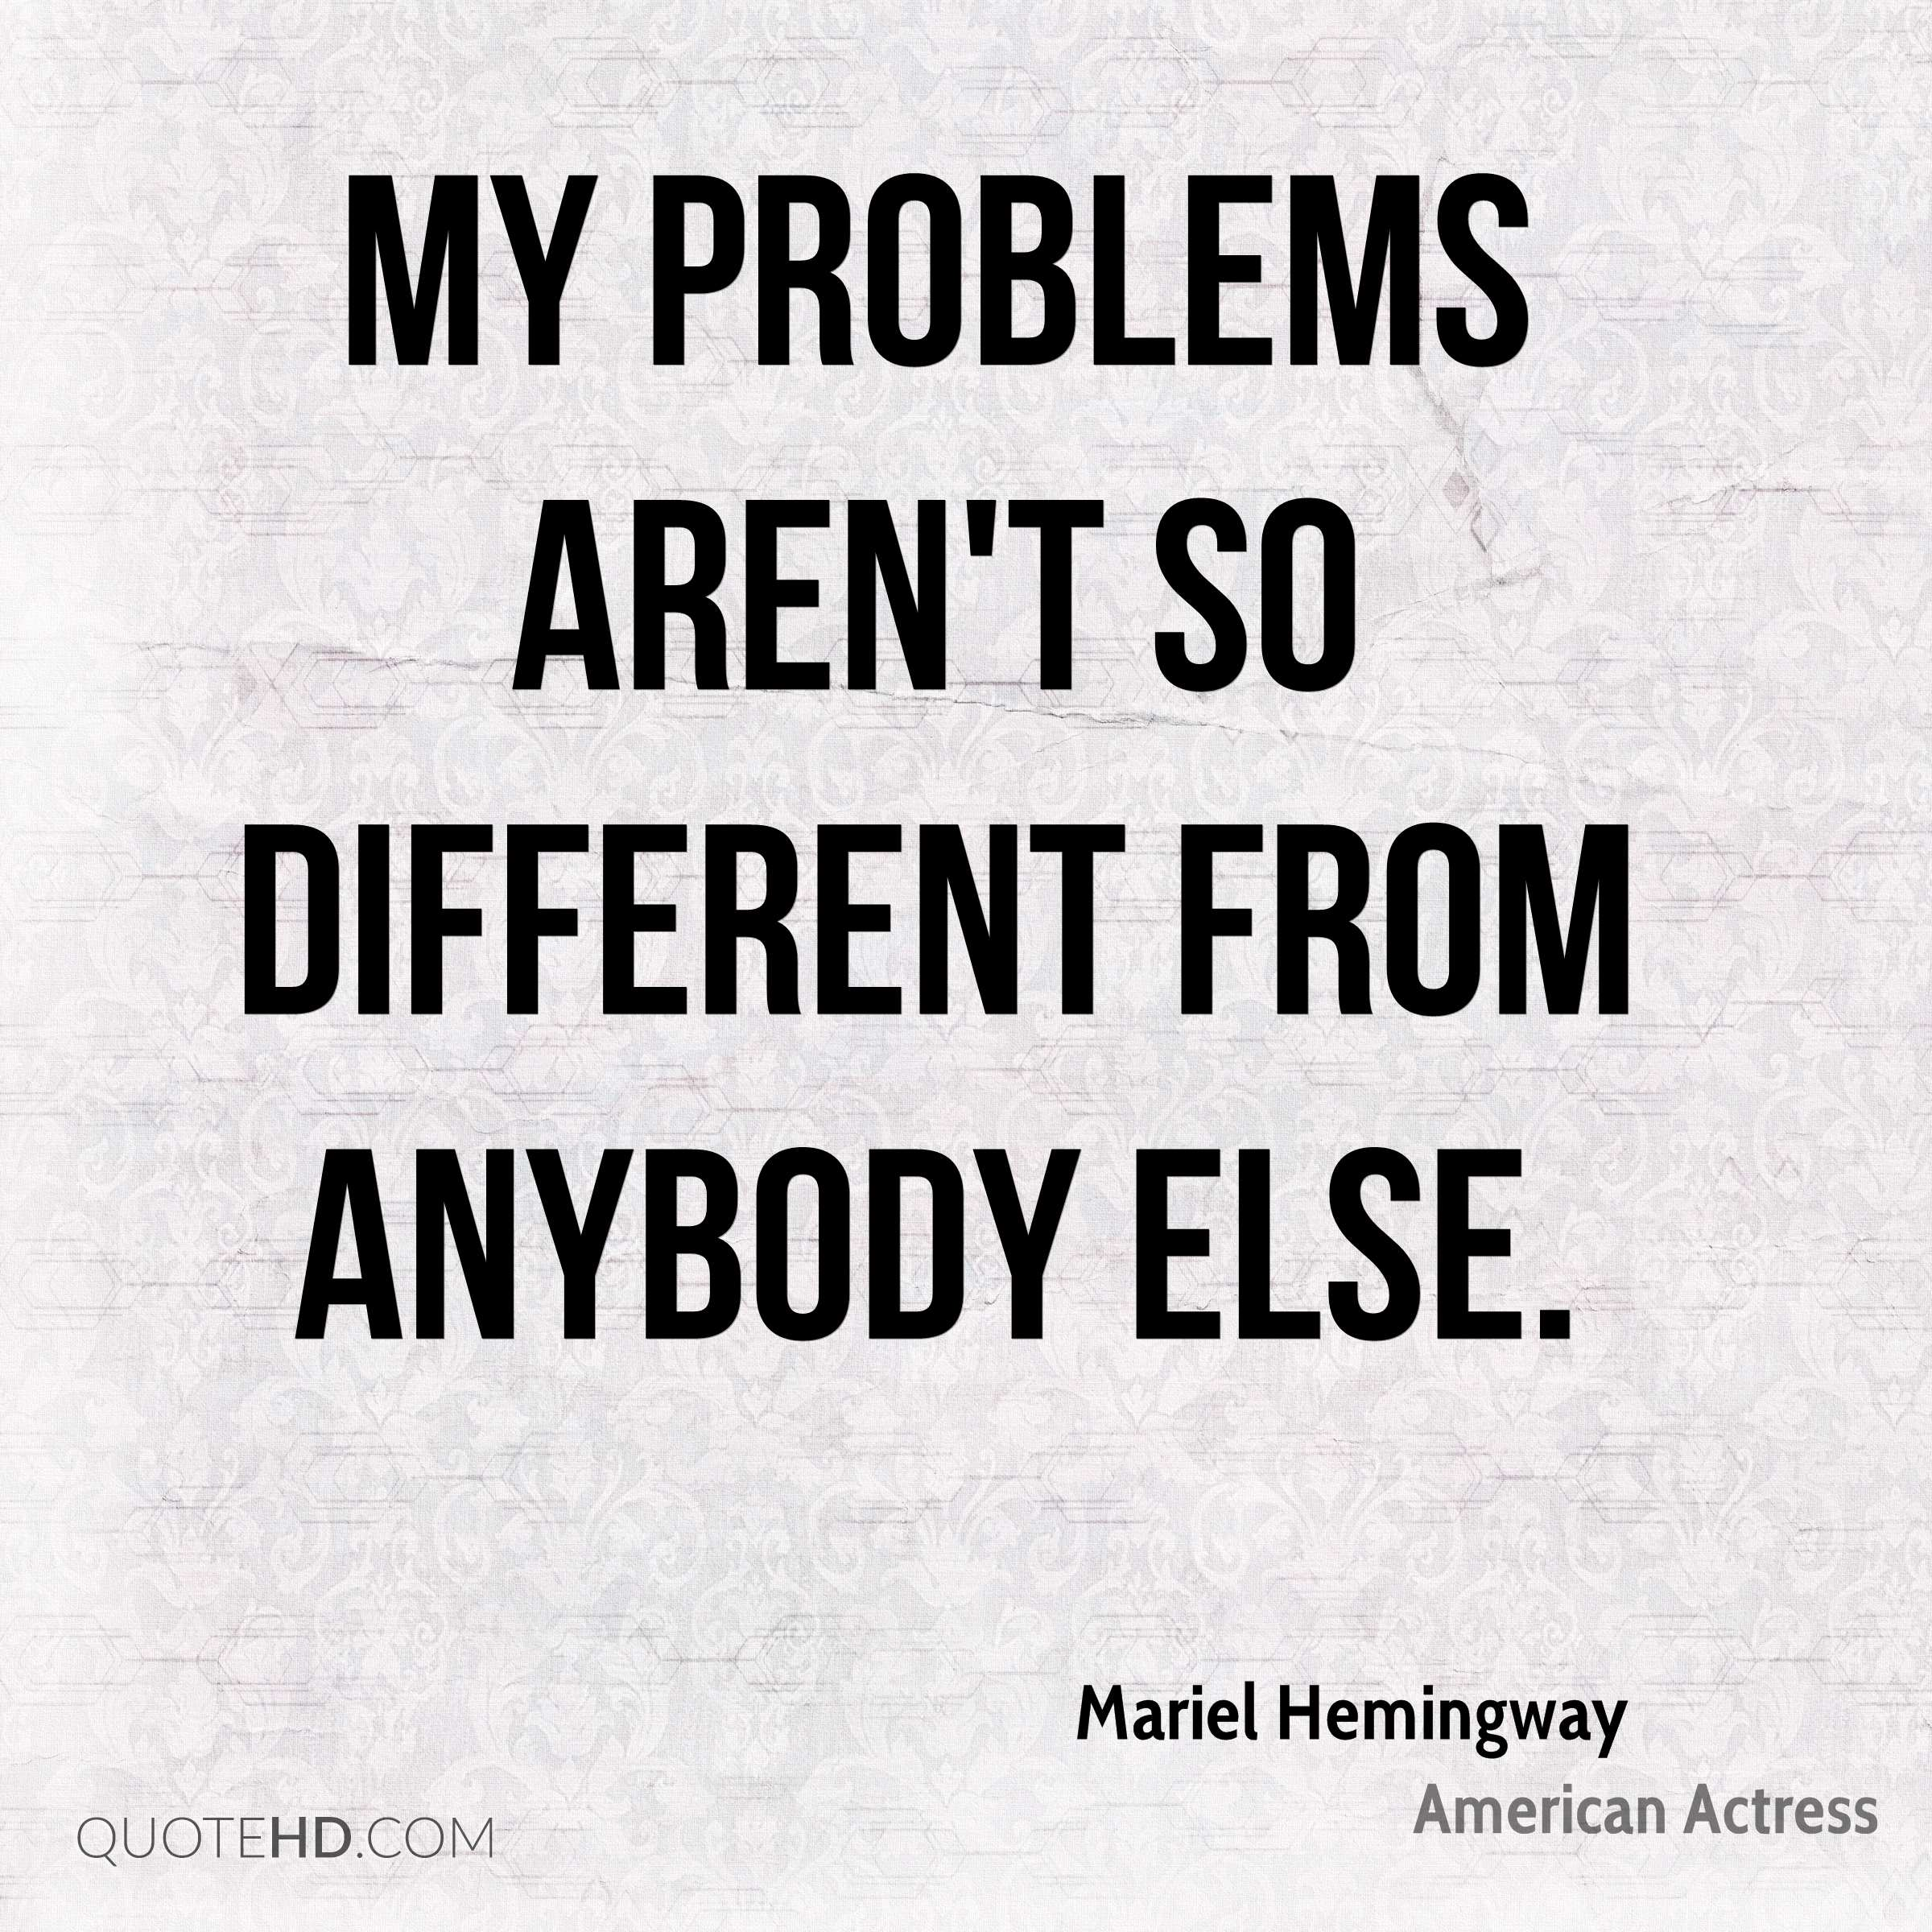 My problems aren't so different from anybody else.